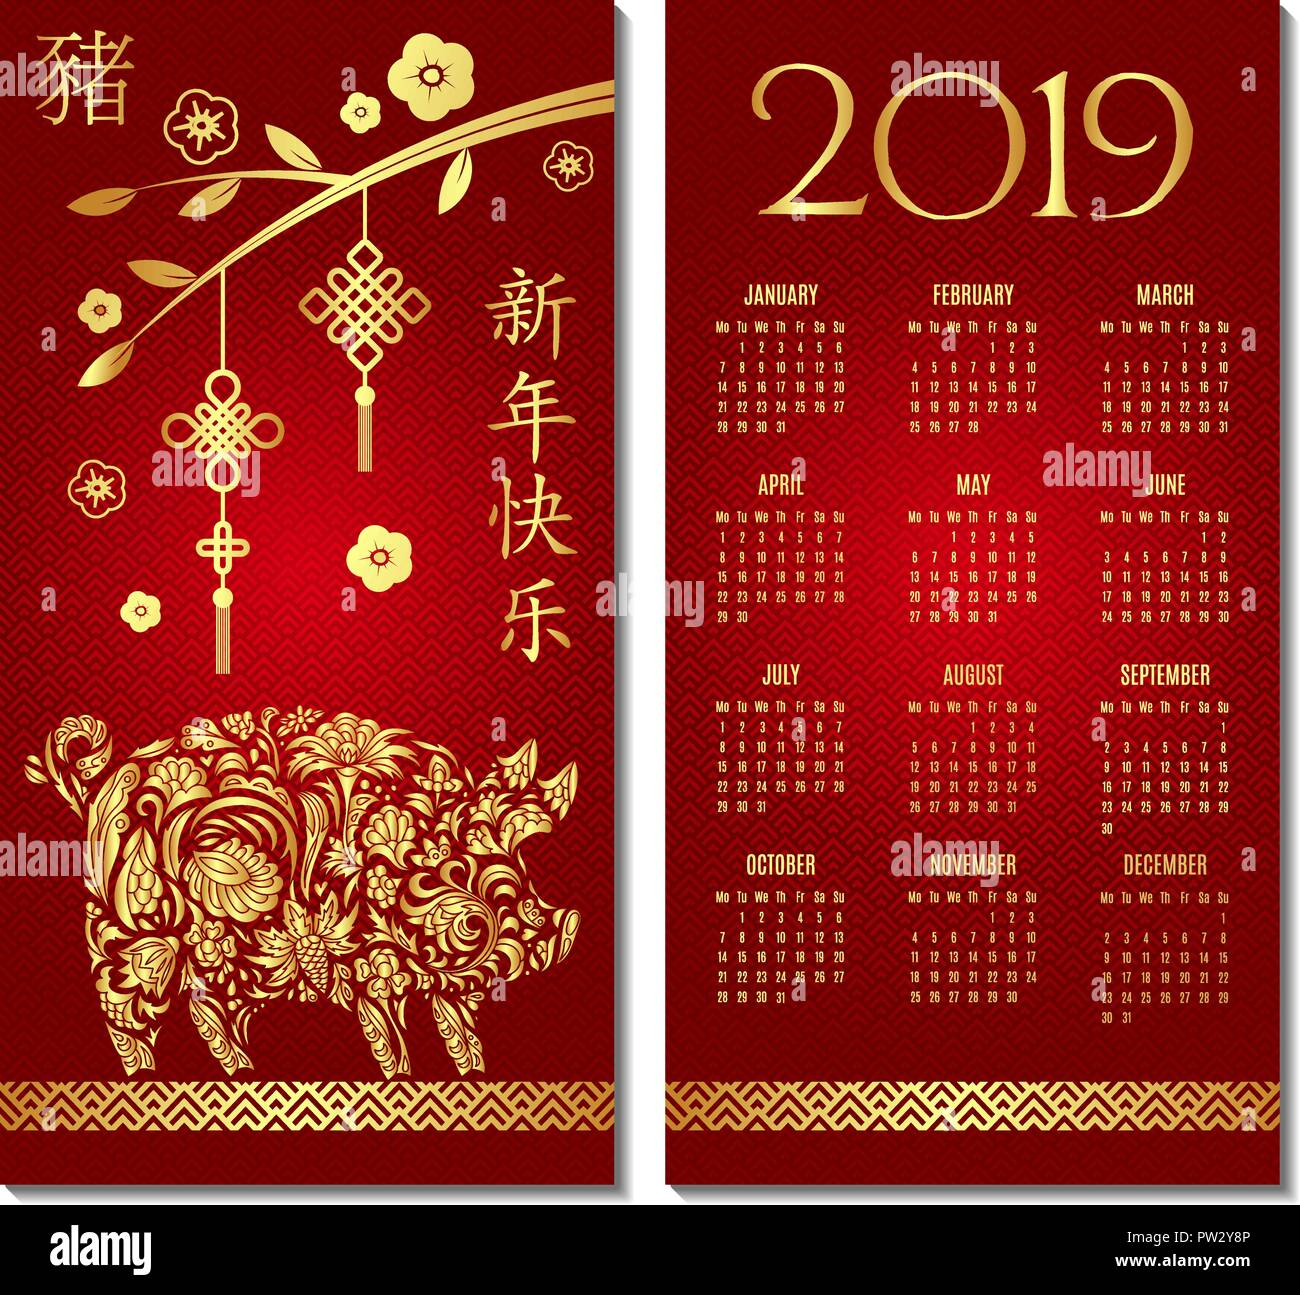 calendar 2019 happy new year chinese new year greetings year of the pig fortune translation happy new year pig